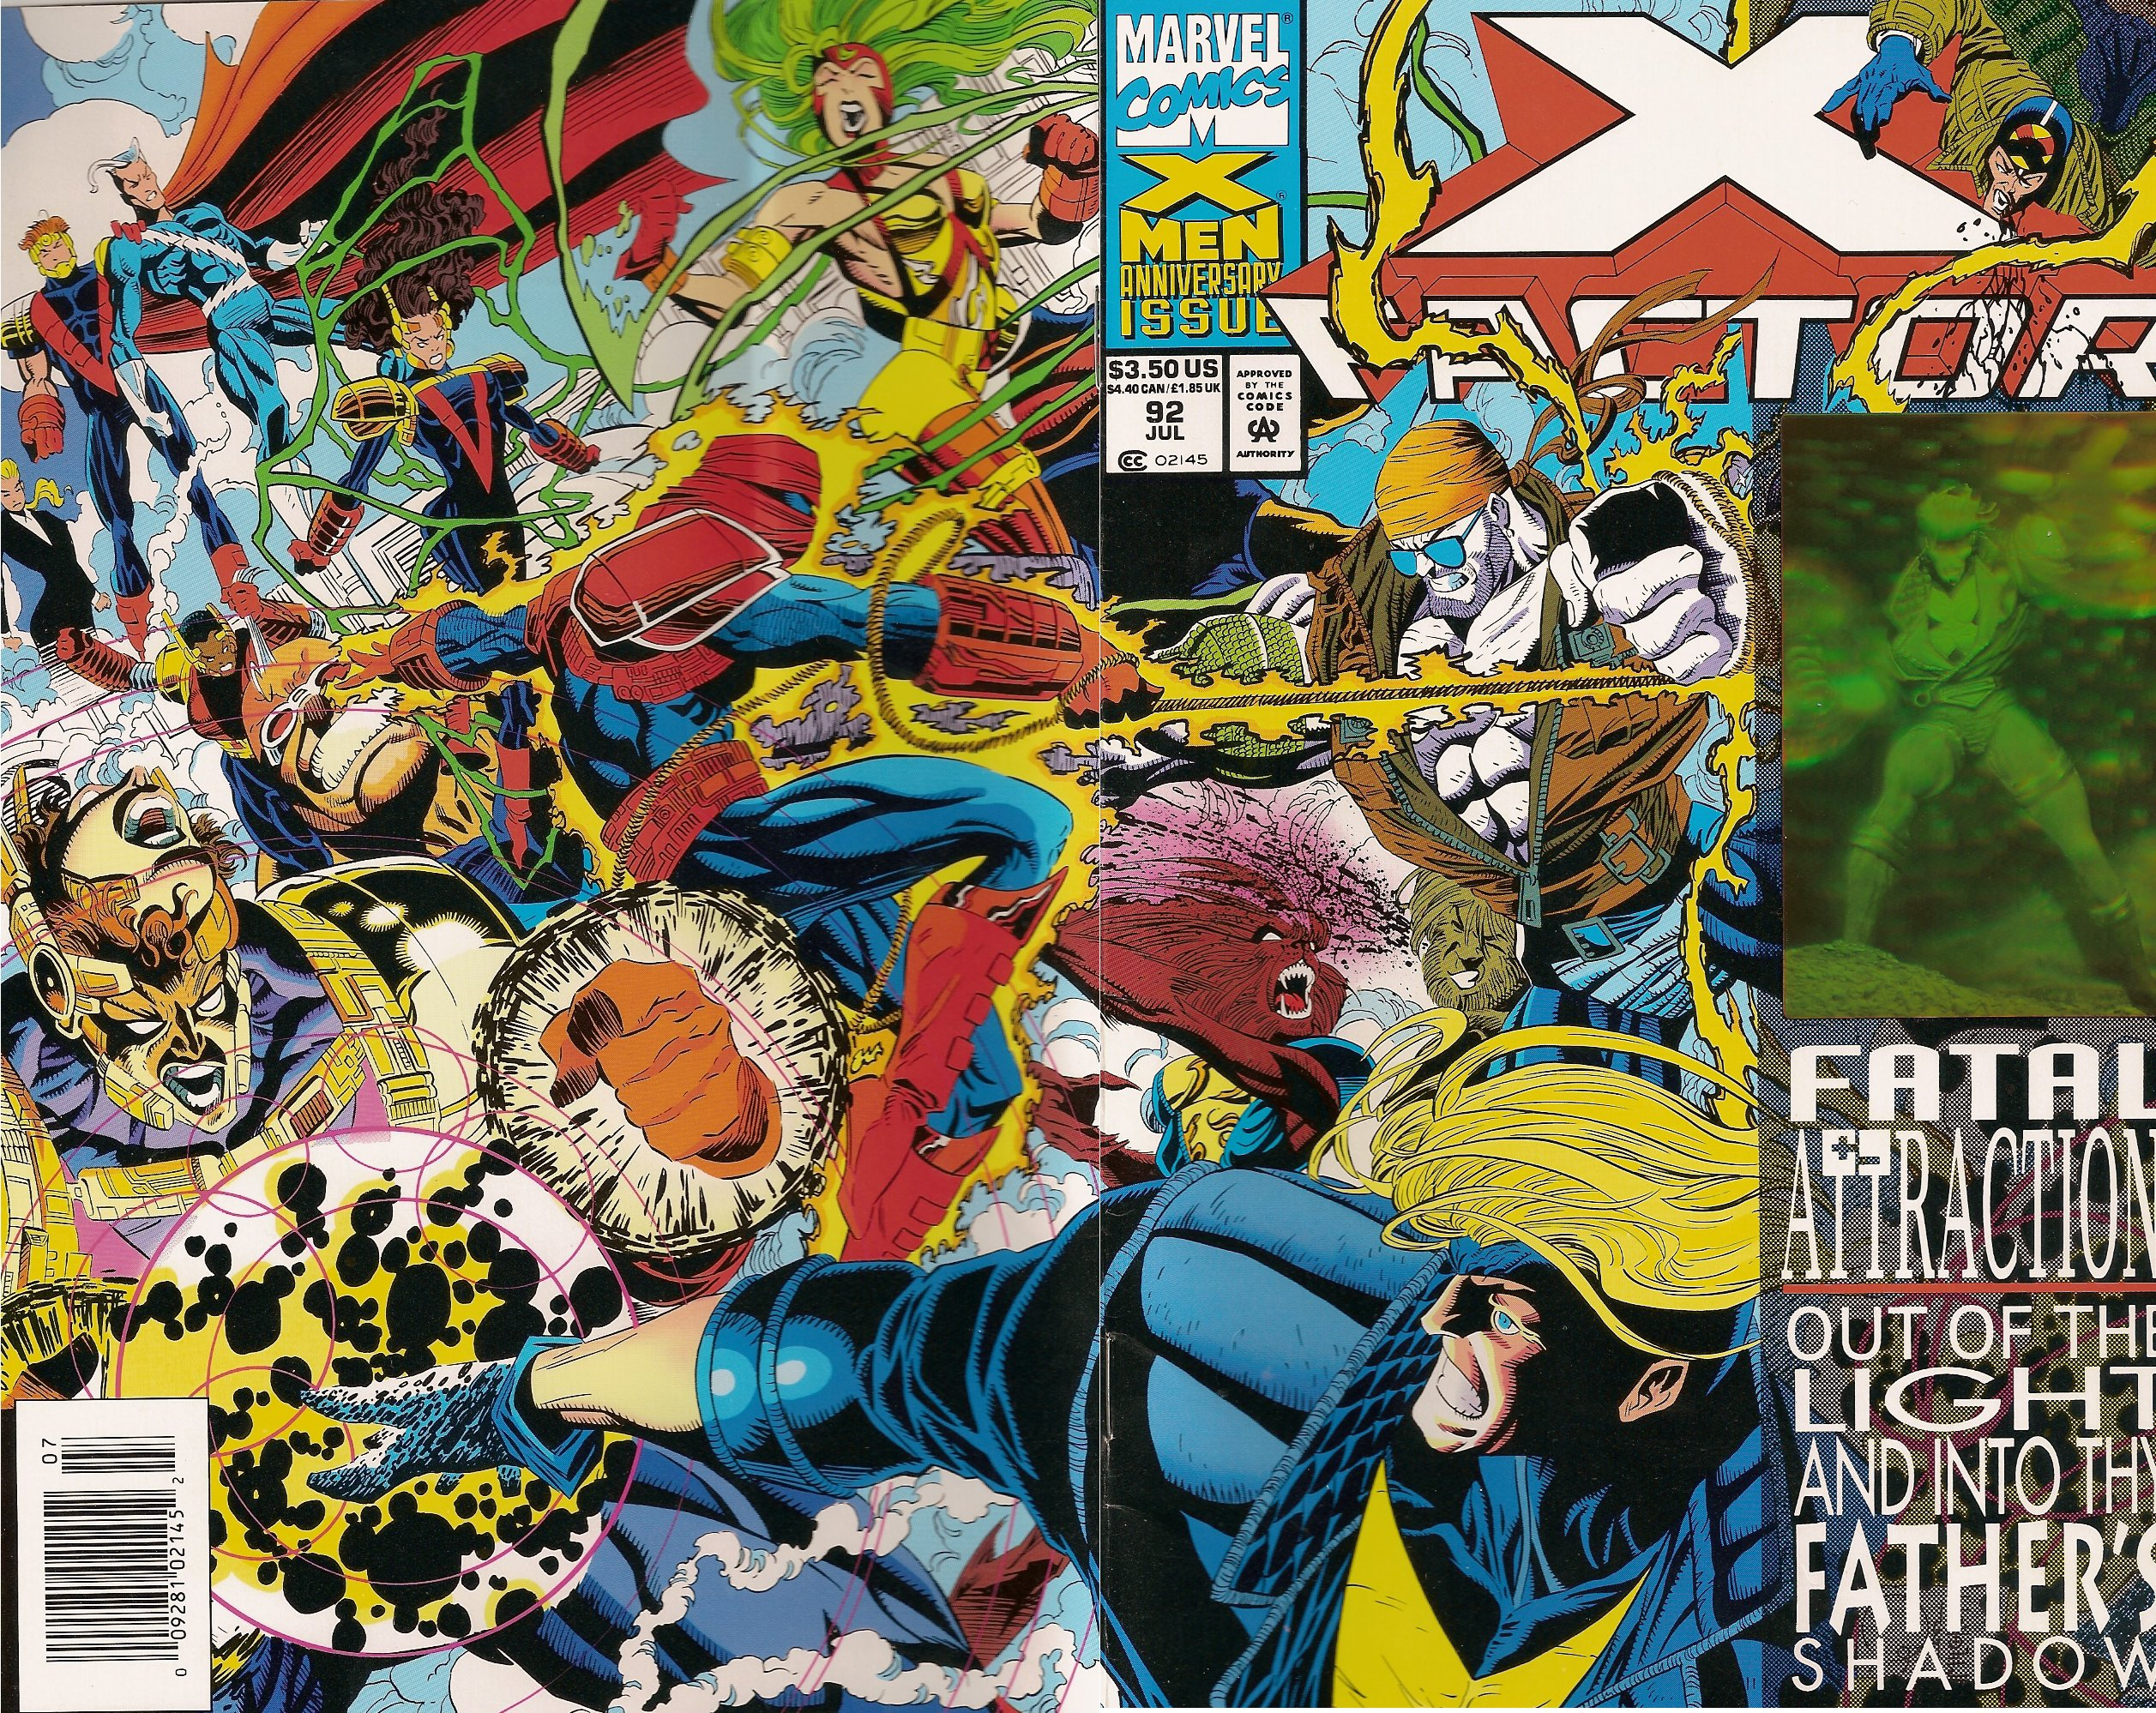 peter david x factor vol 1 92 wraparound Marvel Expanding Universe Wall Chart. David Brothers over at the 4thletter! ...